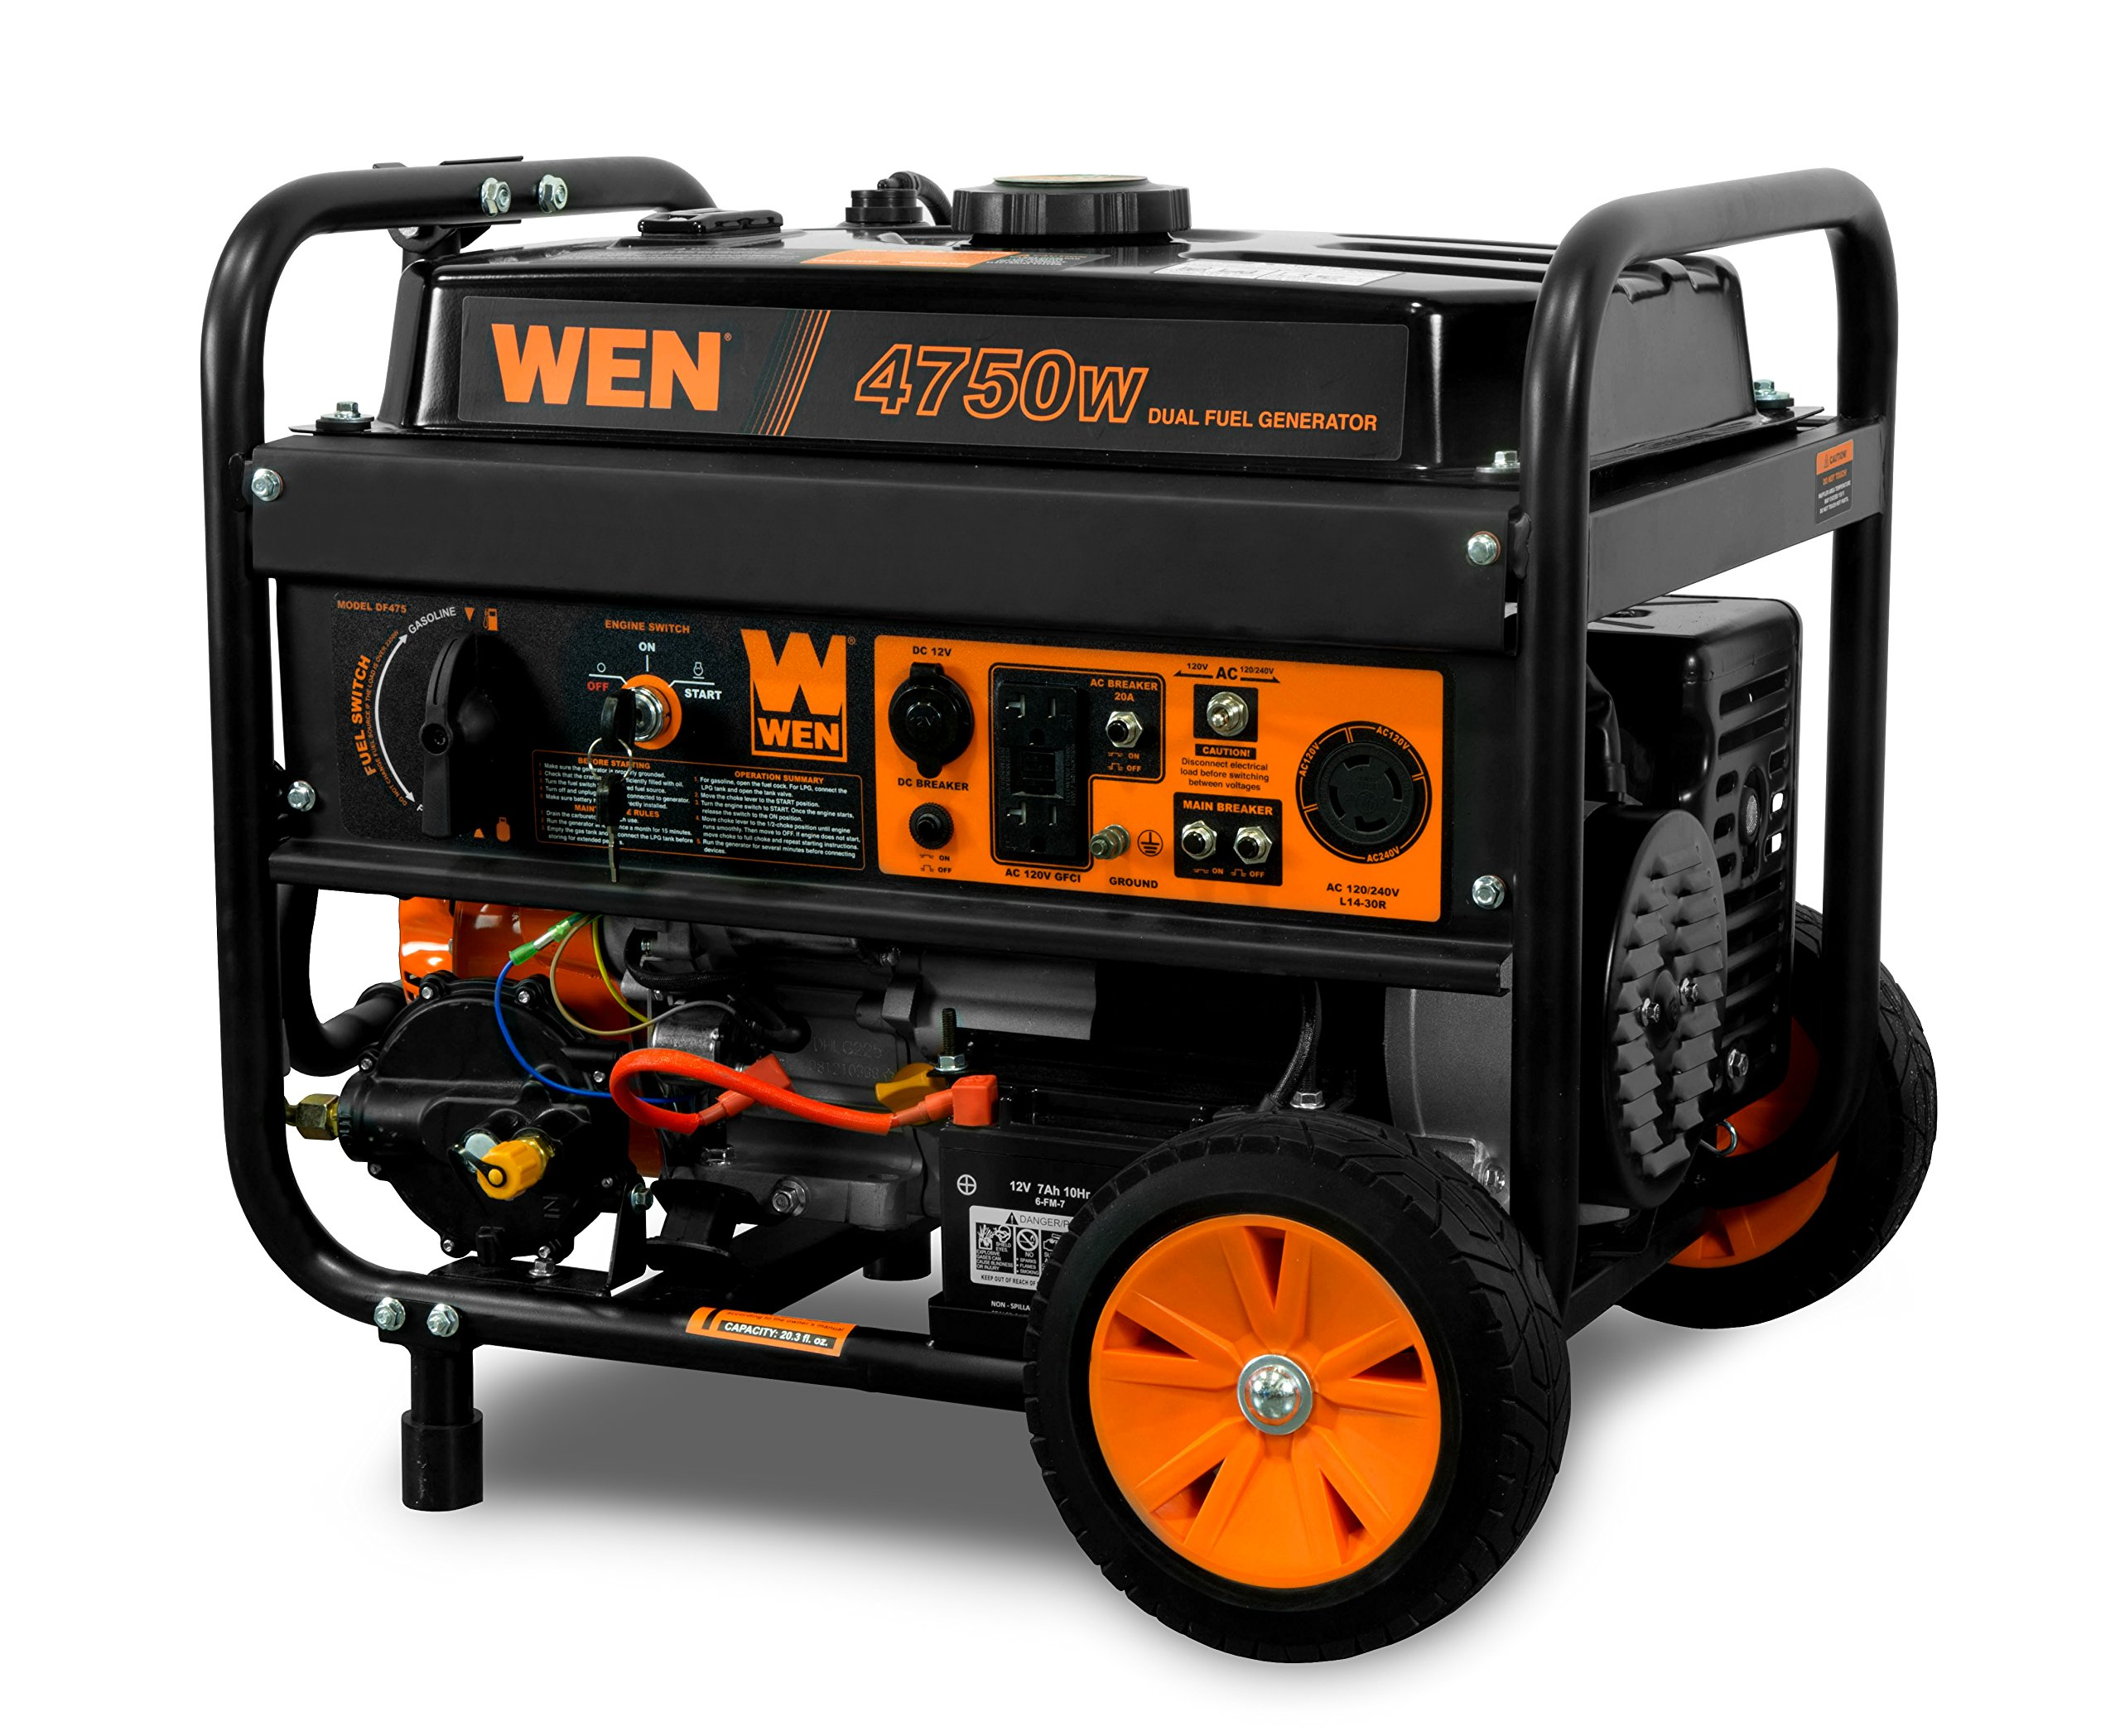 WEN DF475T 4750-Watt 120V/240V Dual Fuel Portable Generator with Wheel Kit and Electric Start - CARB Compliant by WEN